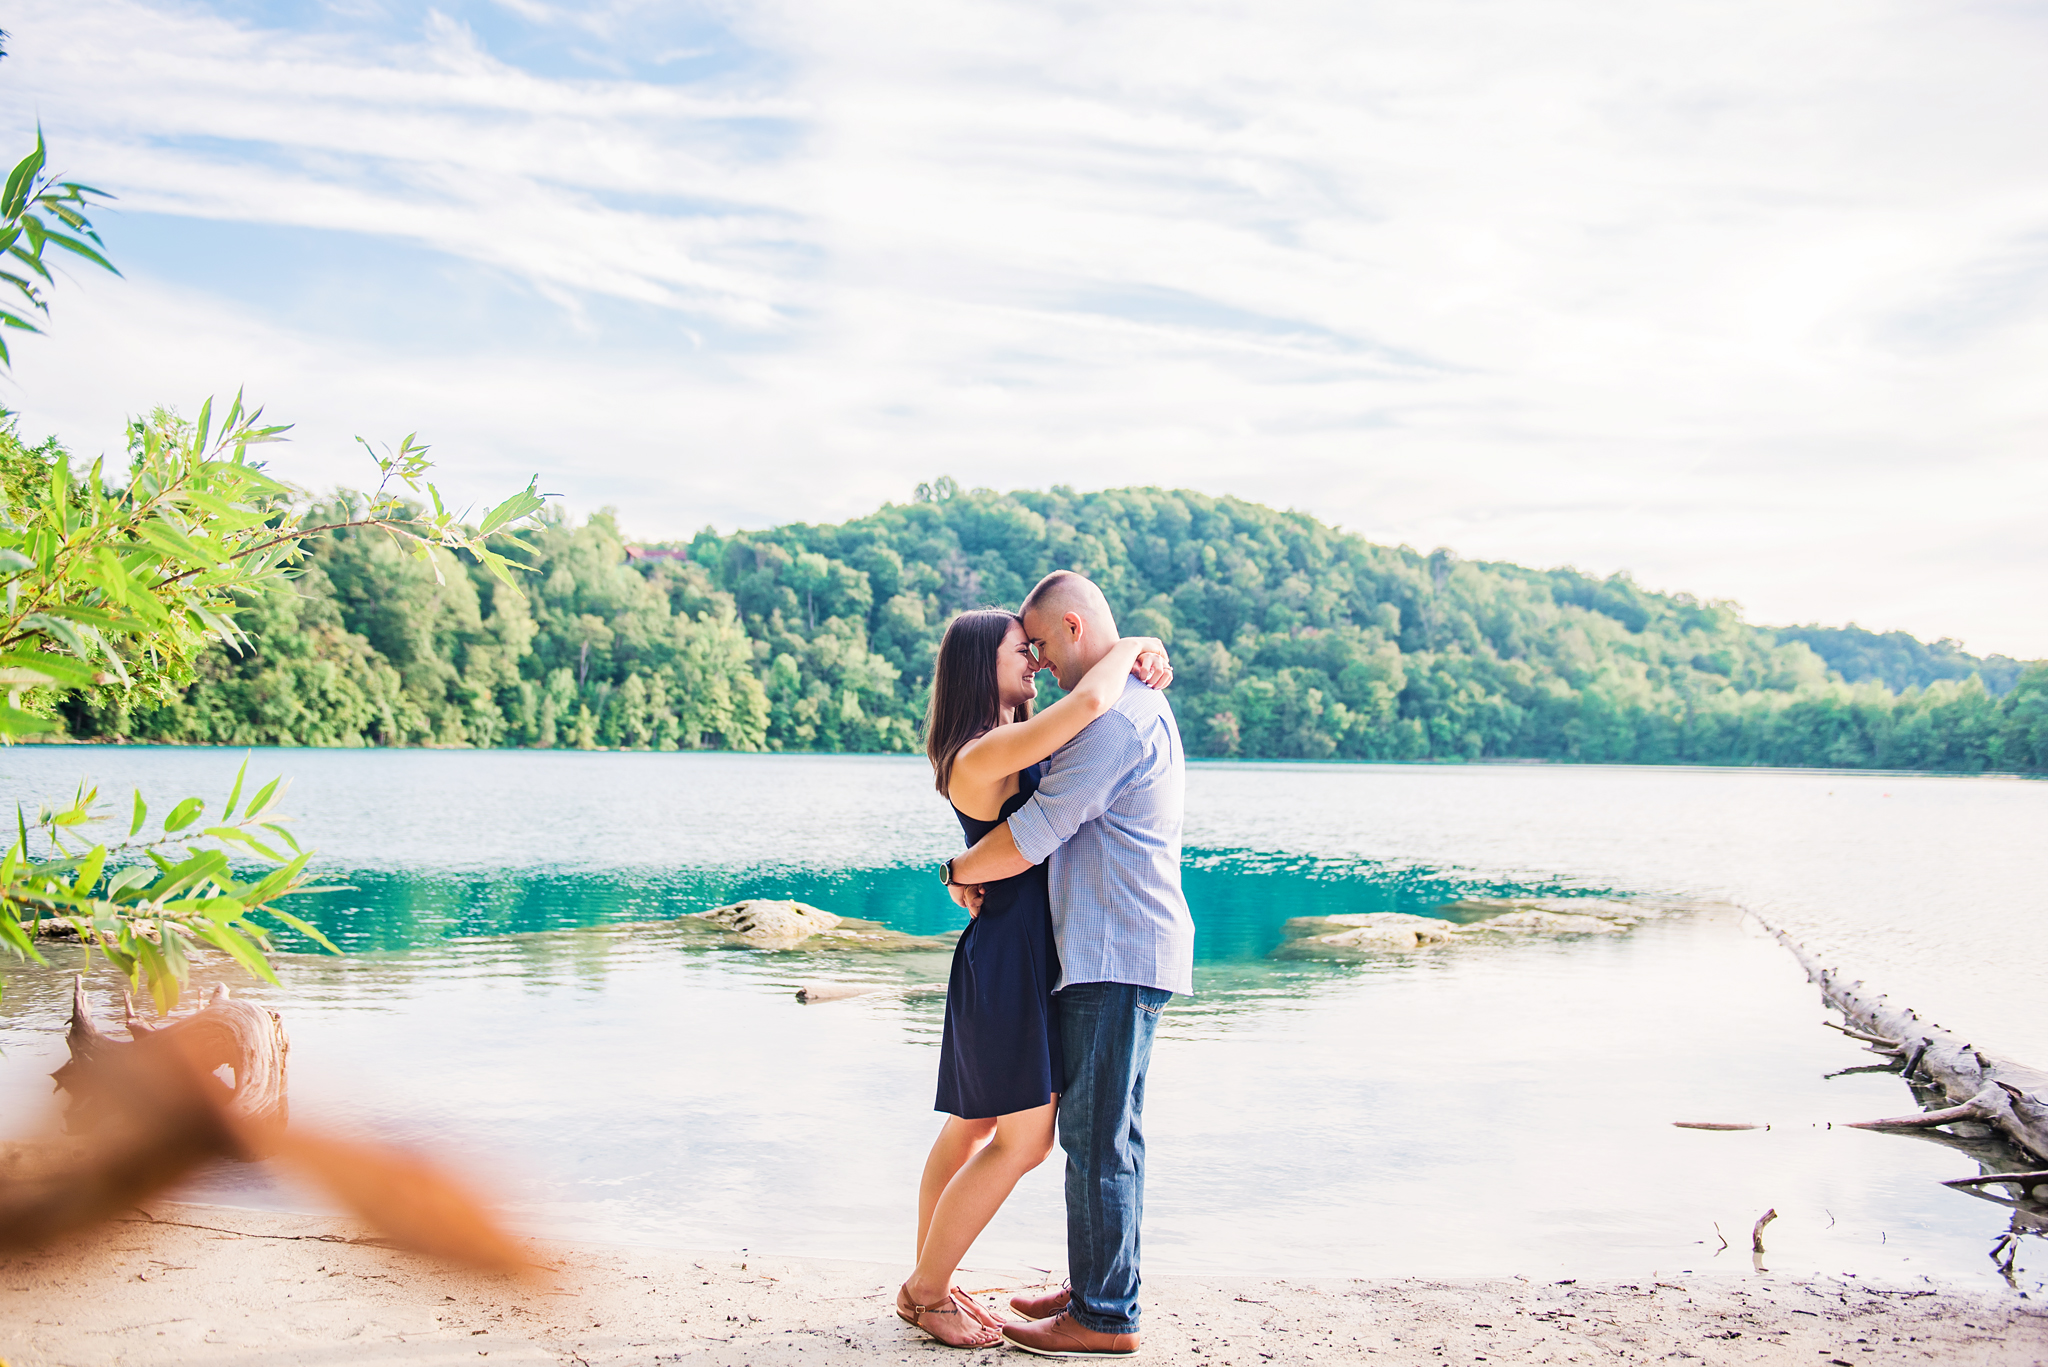 Green_Lakes_State_Park_Syracuse_Engagement_Session_JILL_STUDIO_Rochester_NY_Photographer_DSC_0996.jpg